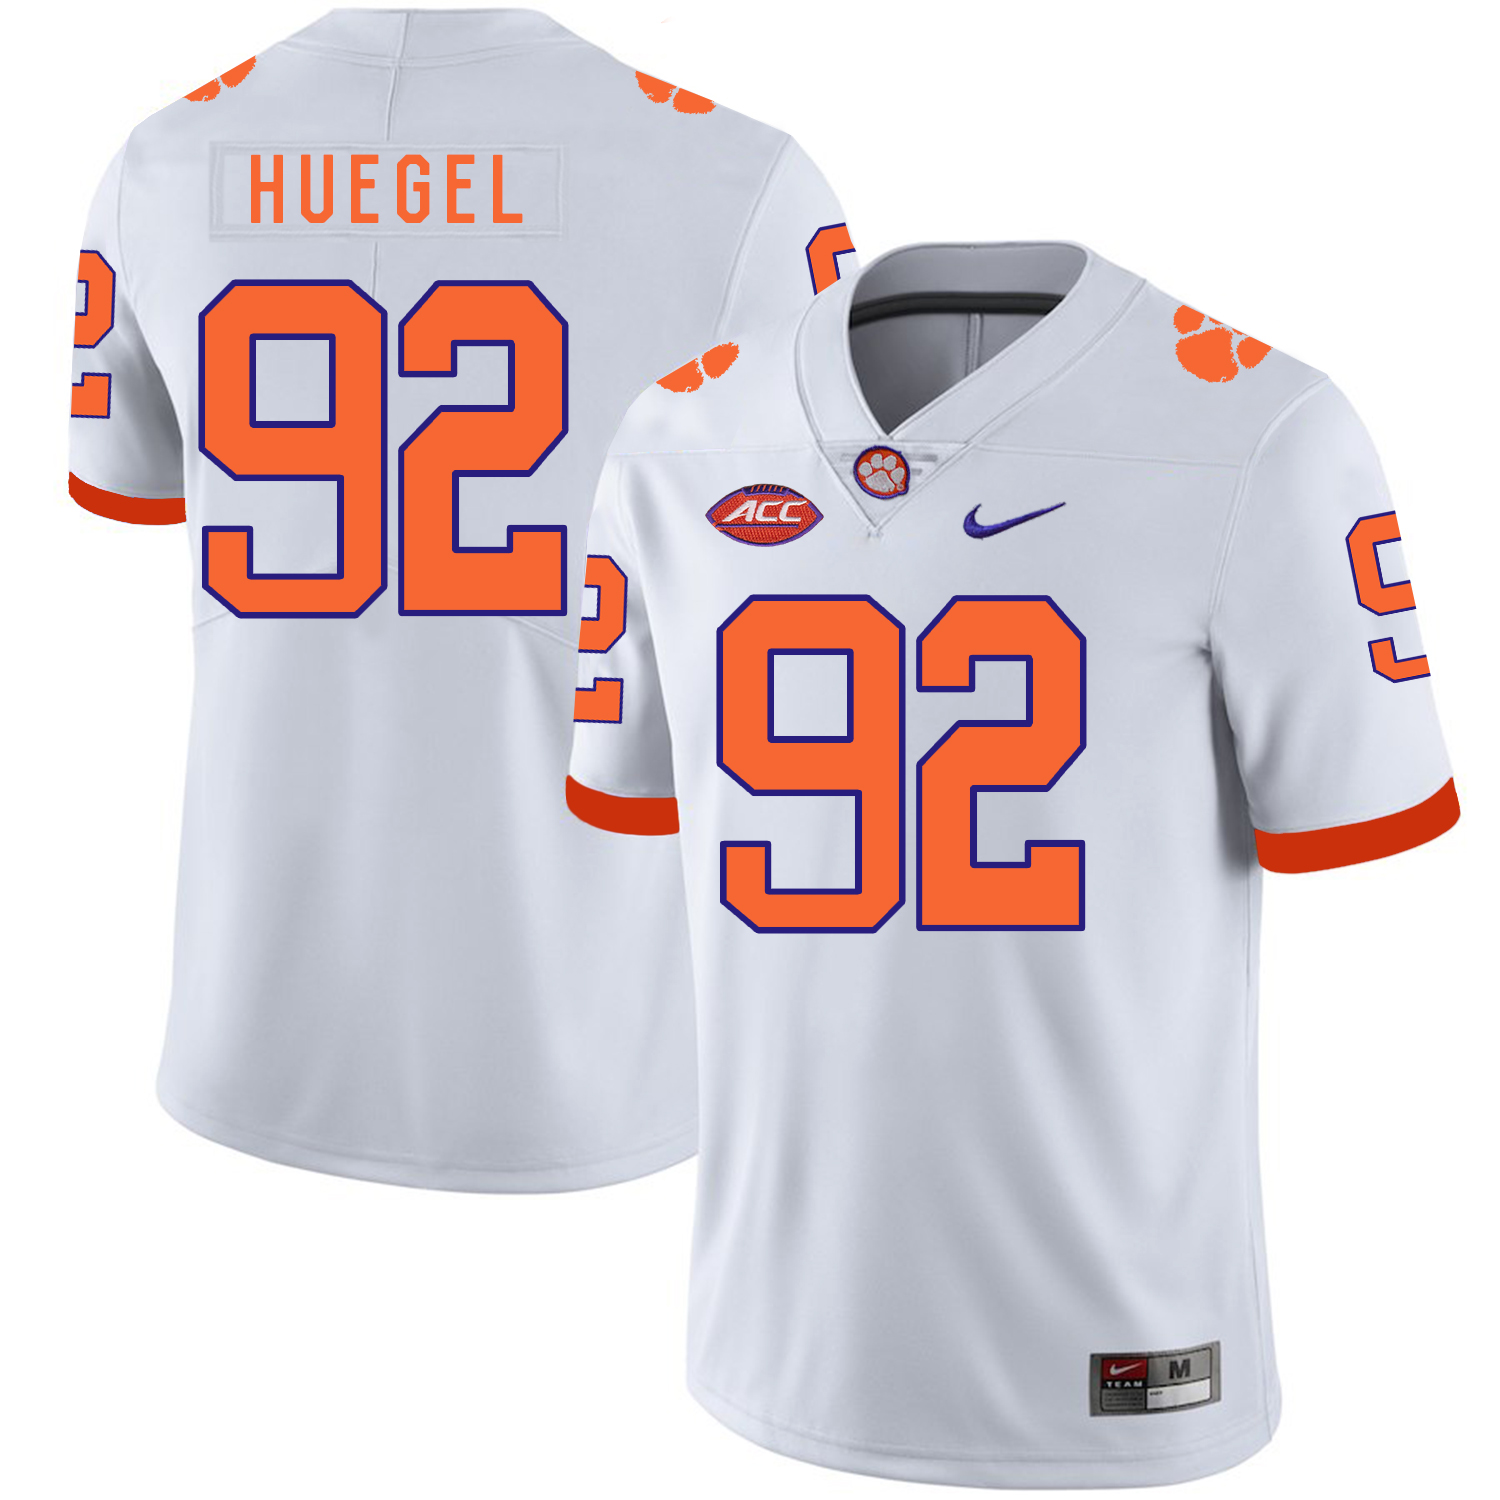 Clemson Tigers 92 Greg Huegel White Nike College Football Jersey